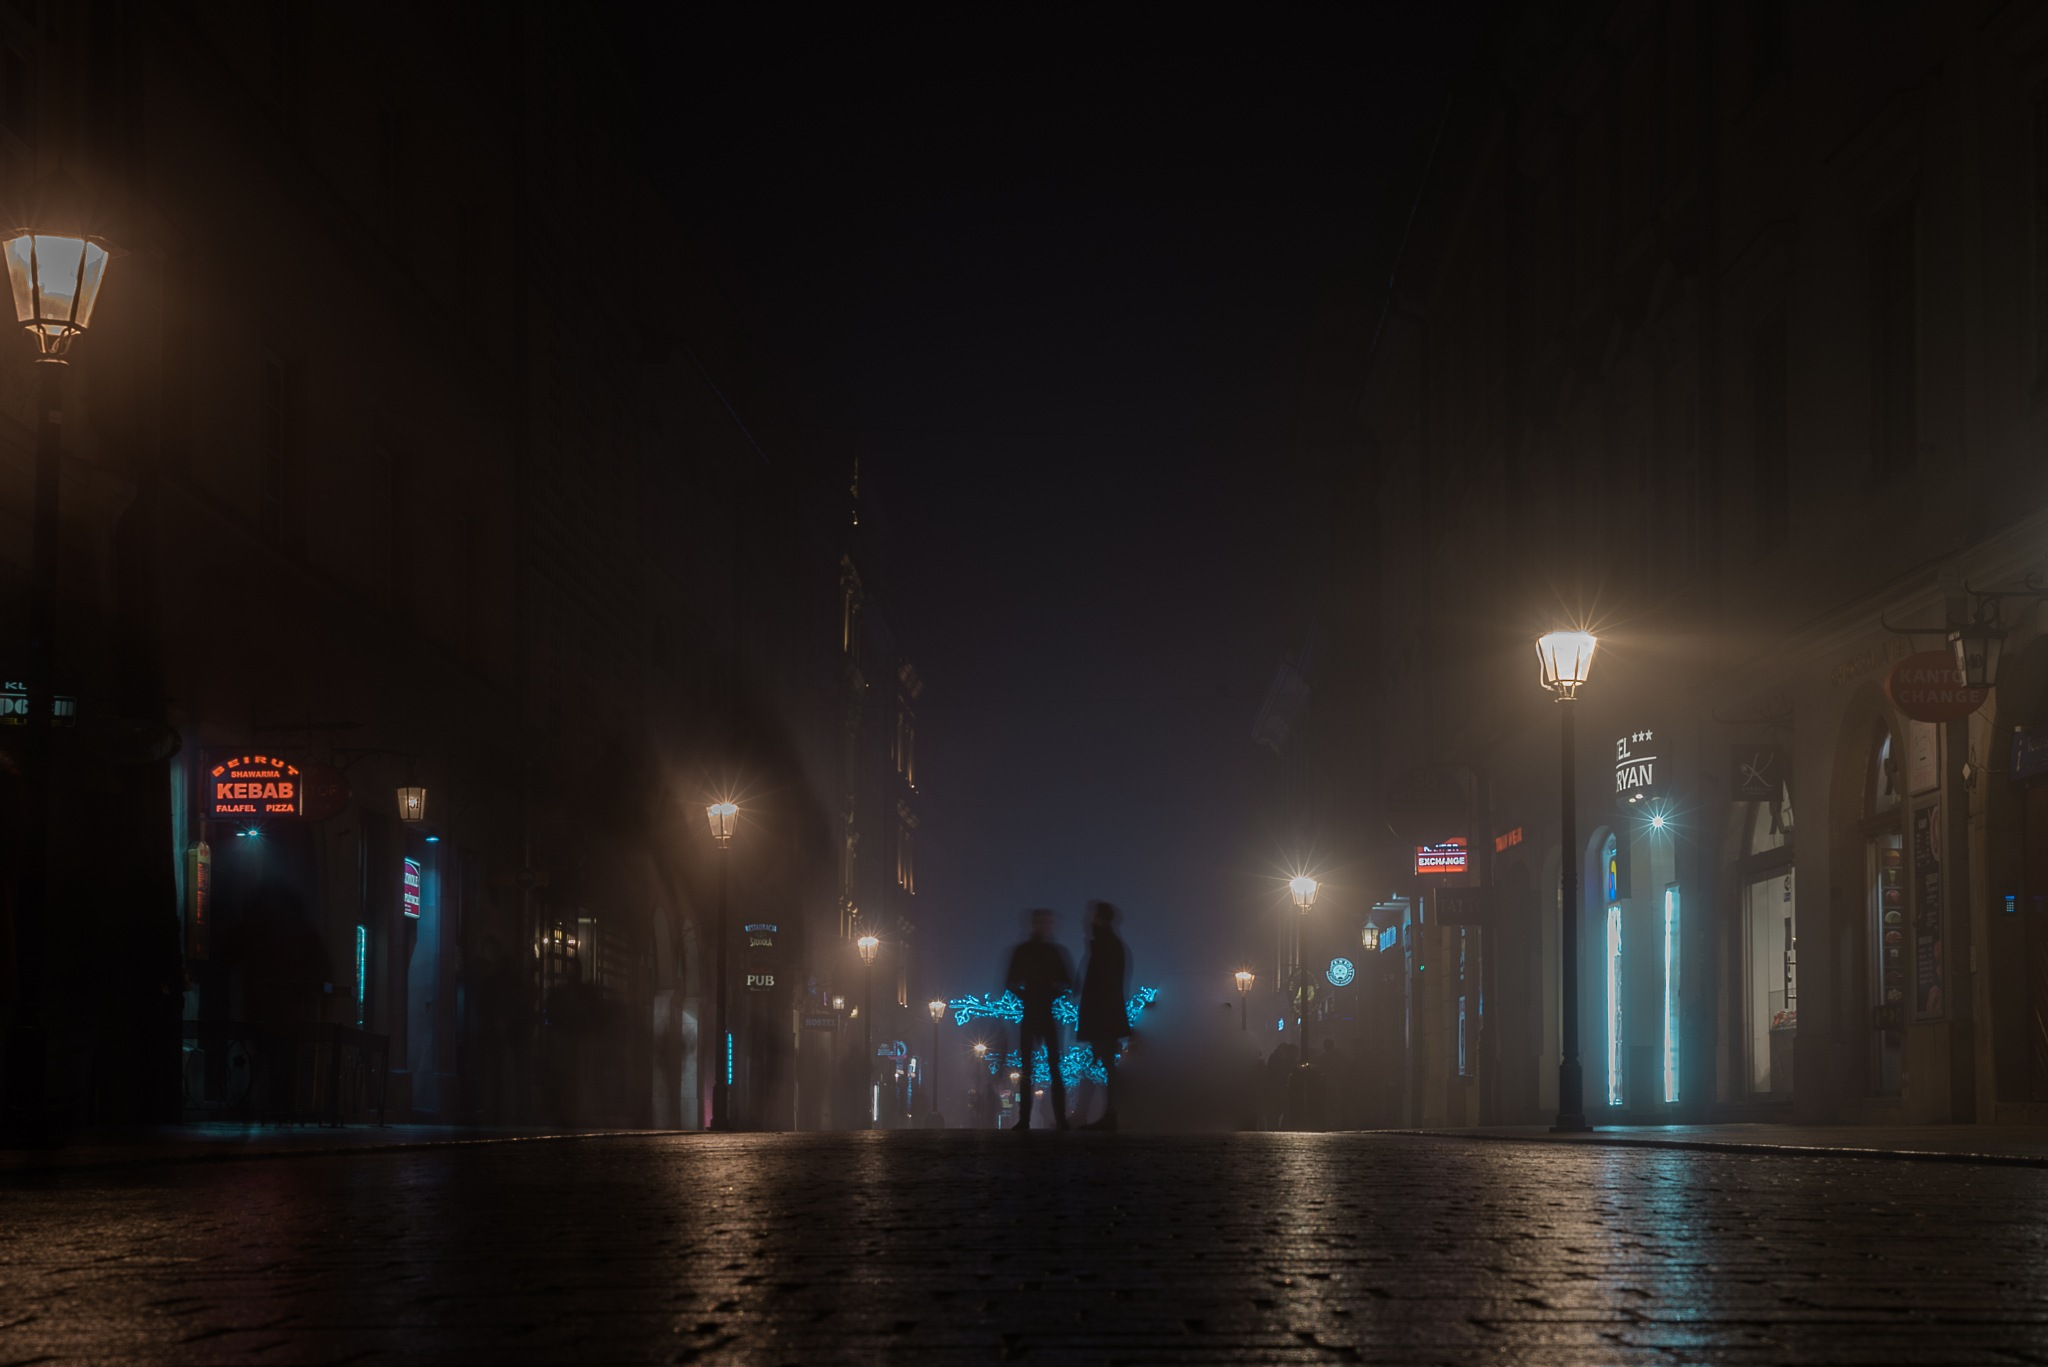 Street in the night  by anto71